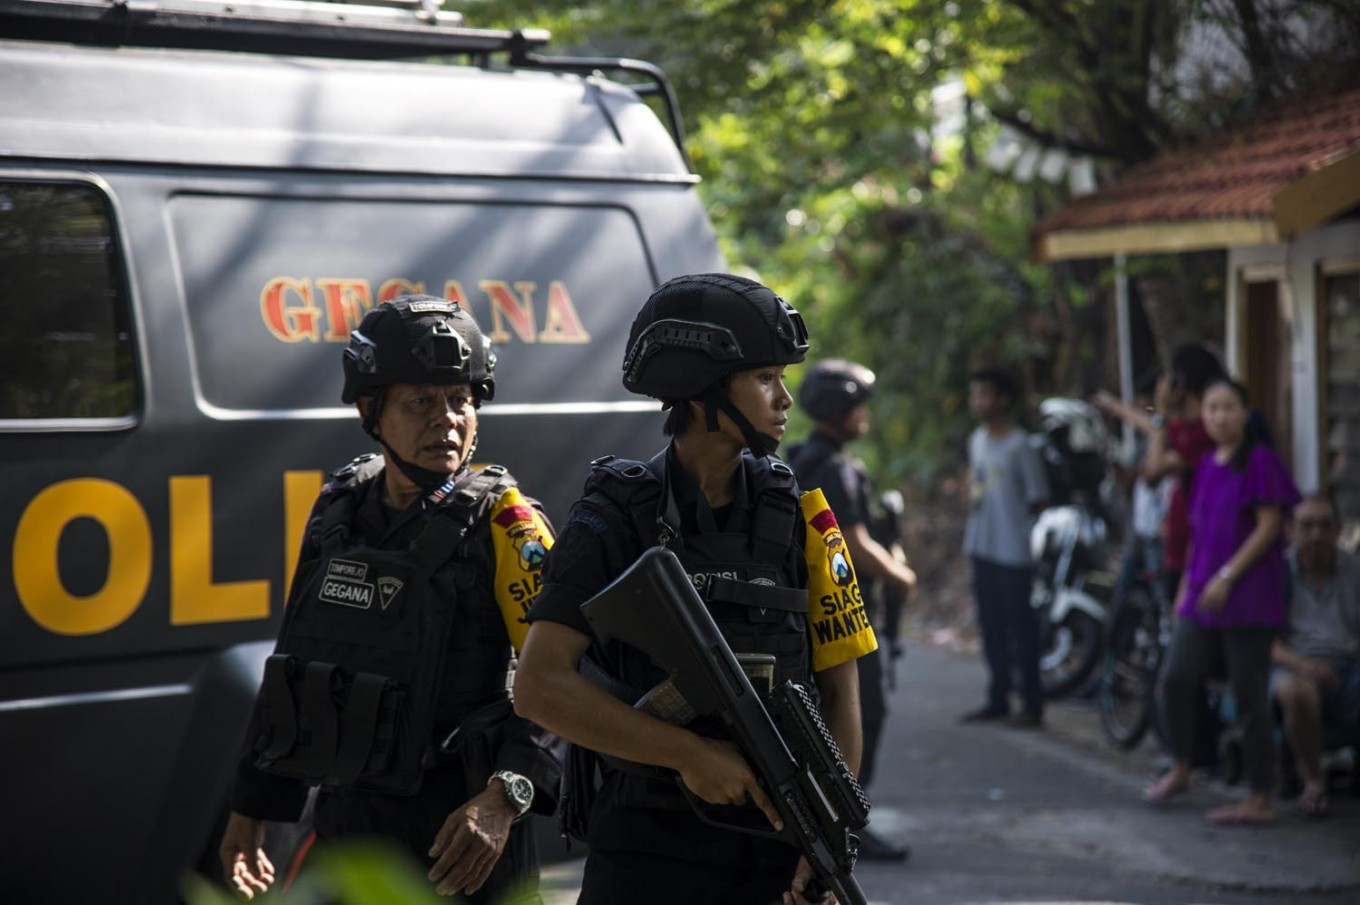 [UPDATED] Surabaya church bombings: What we know so far